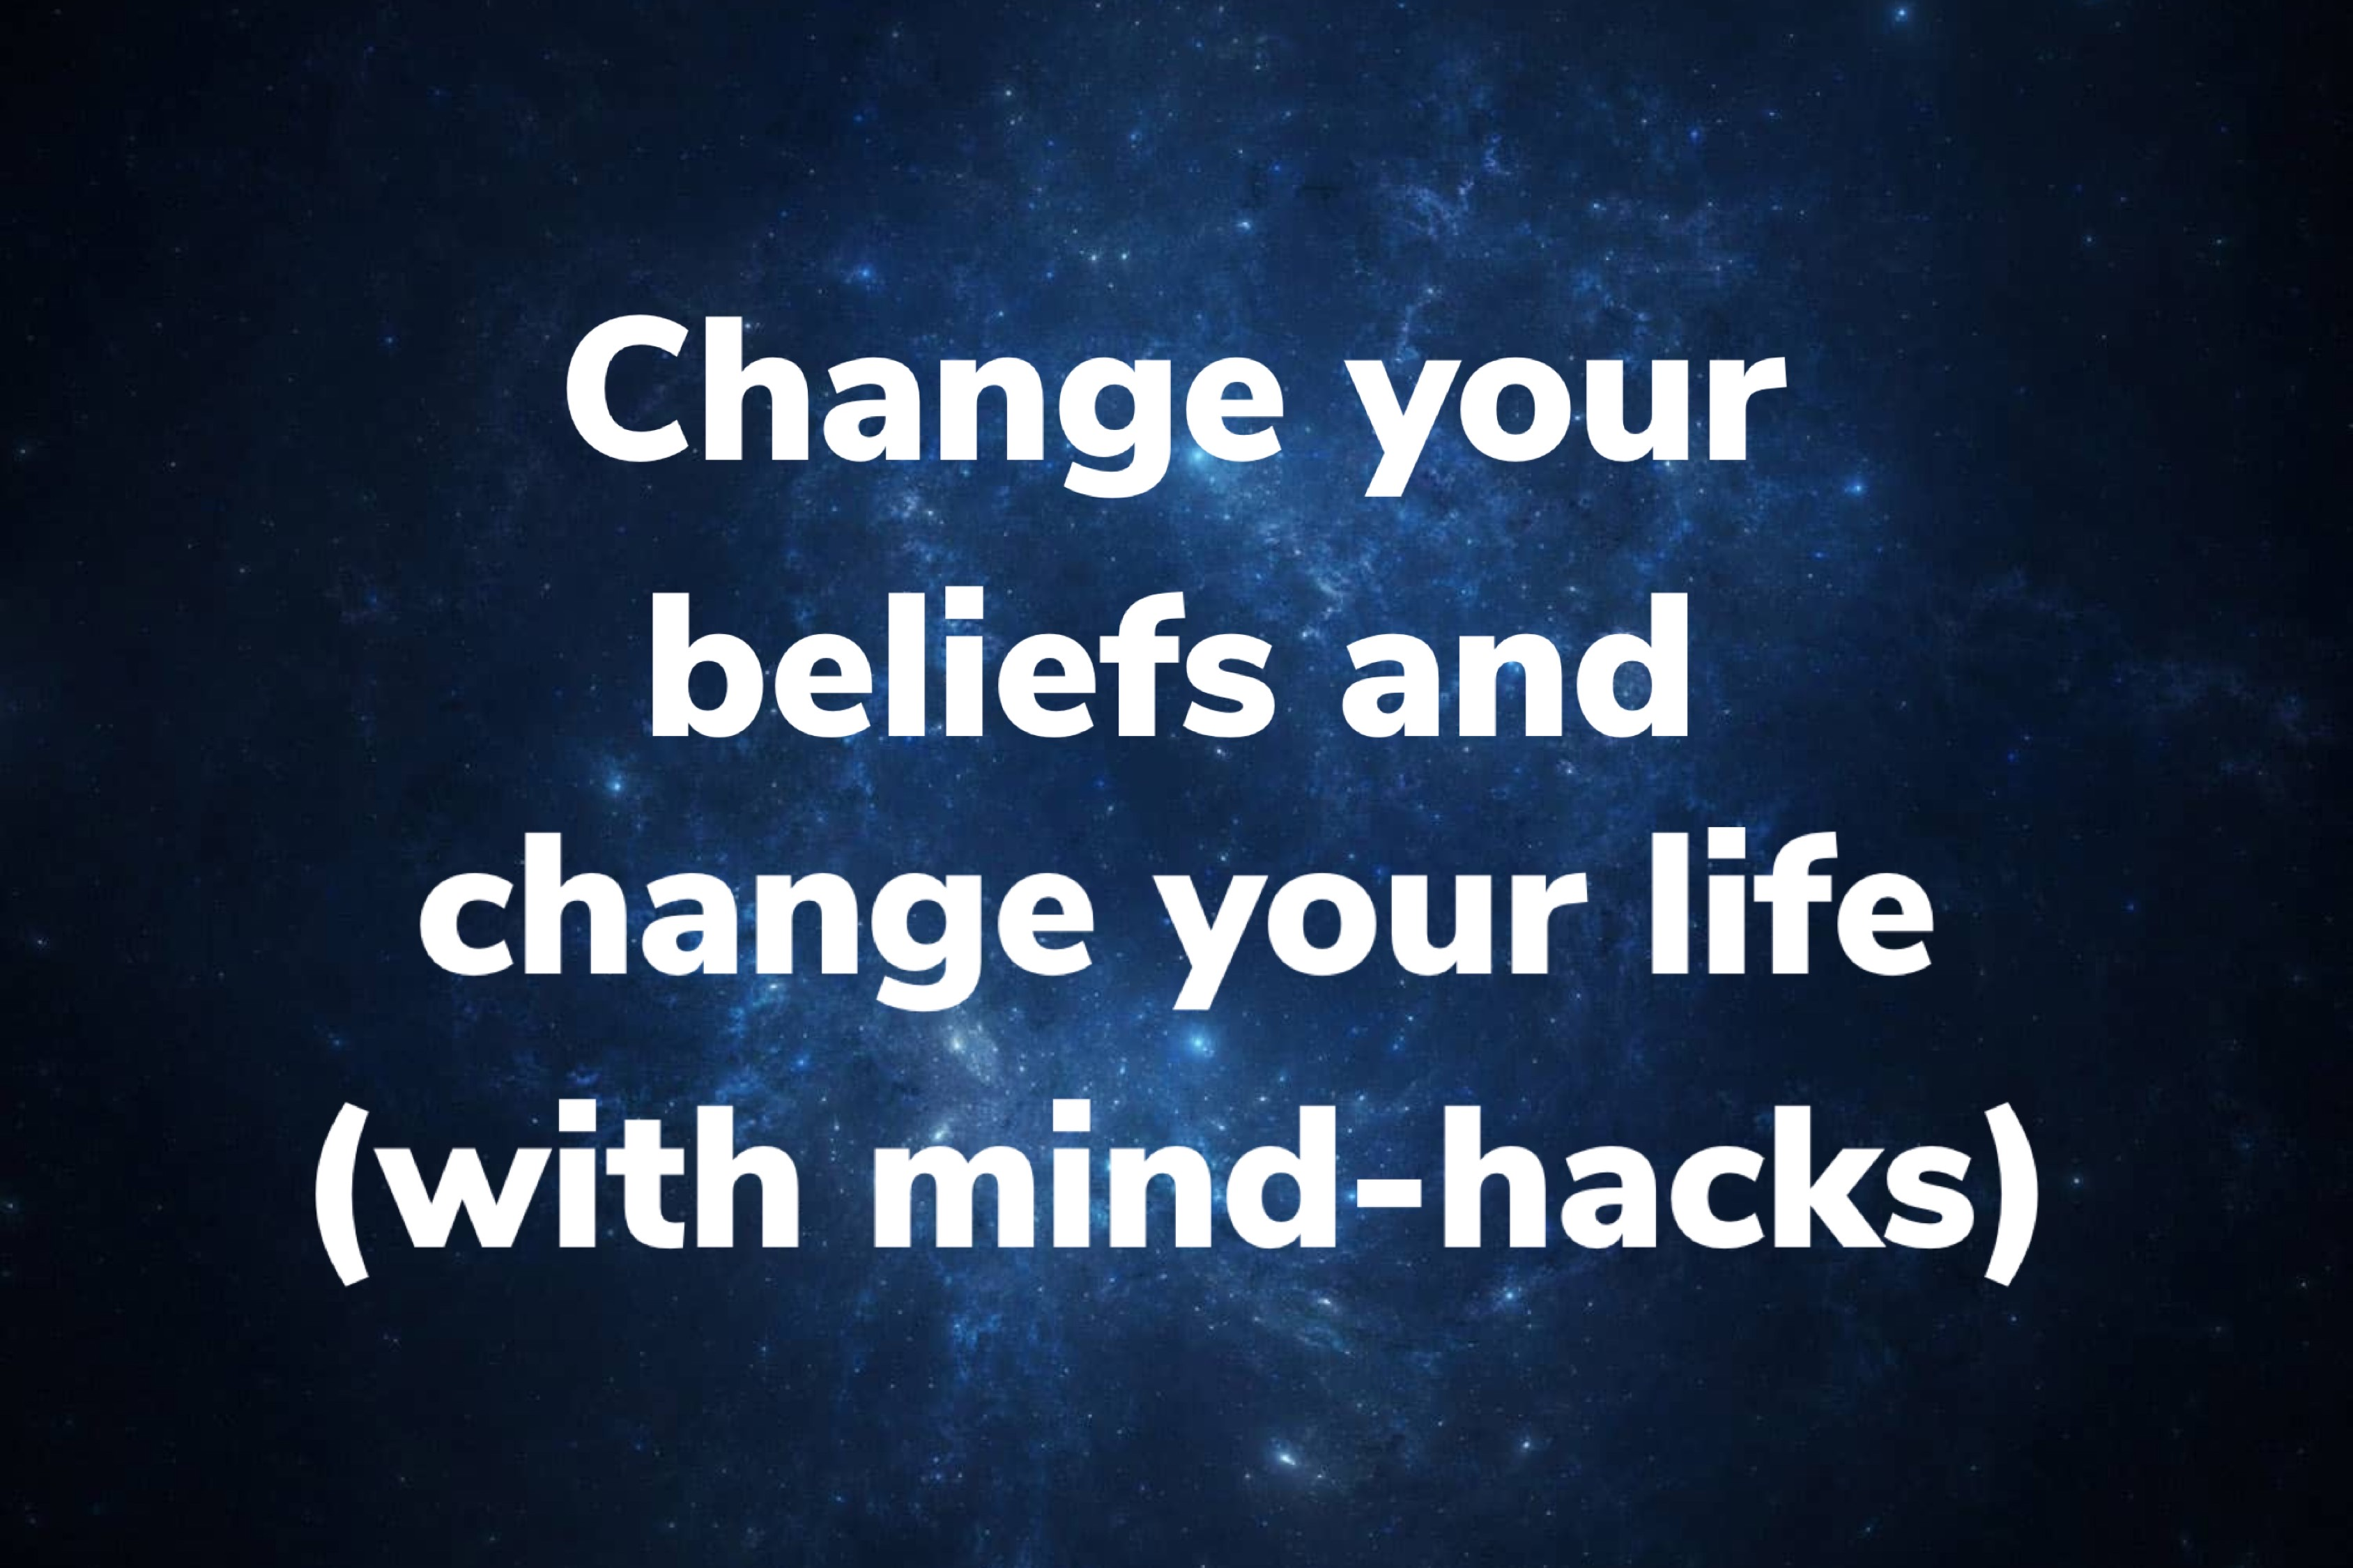 Change your beliefs to change your life (with mind-hacks)